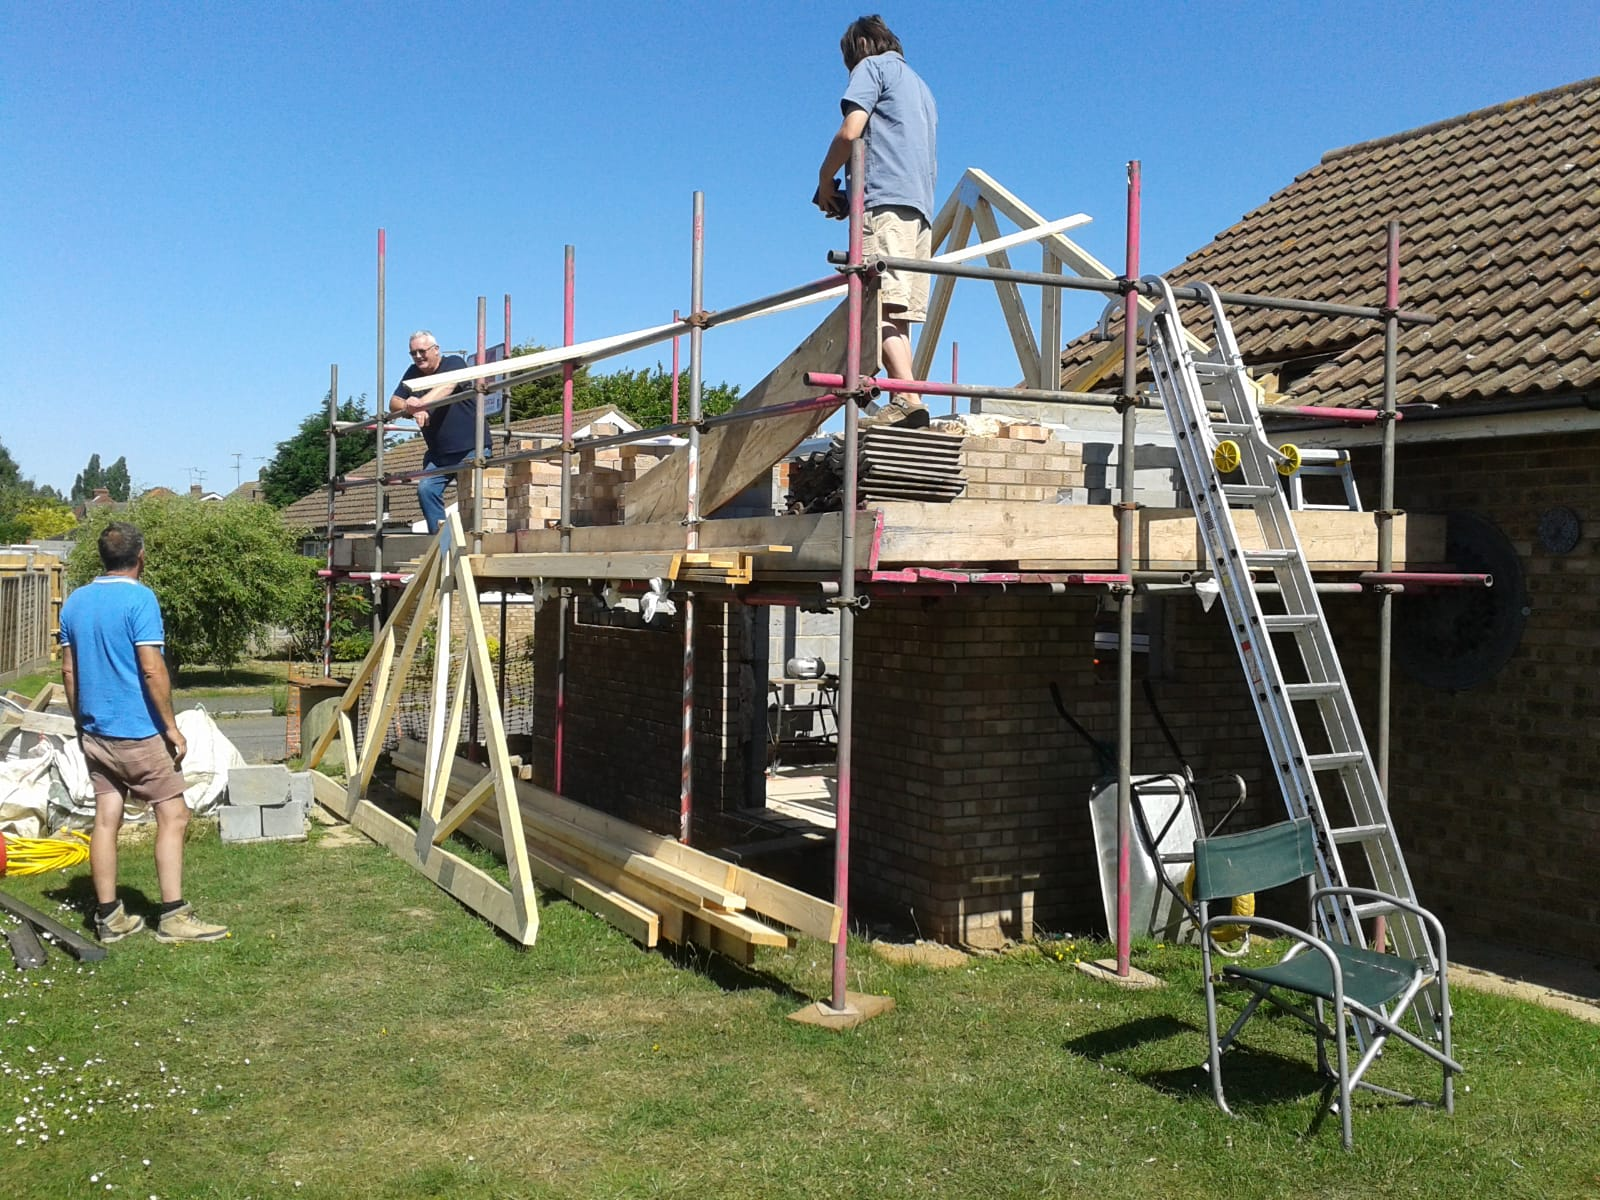 Small extension being built